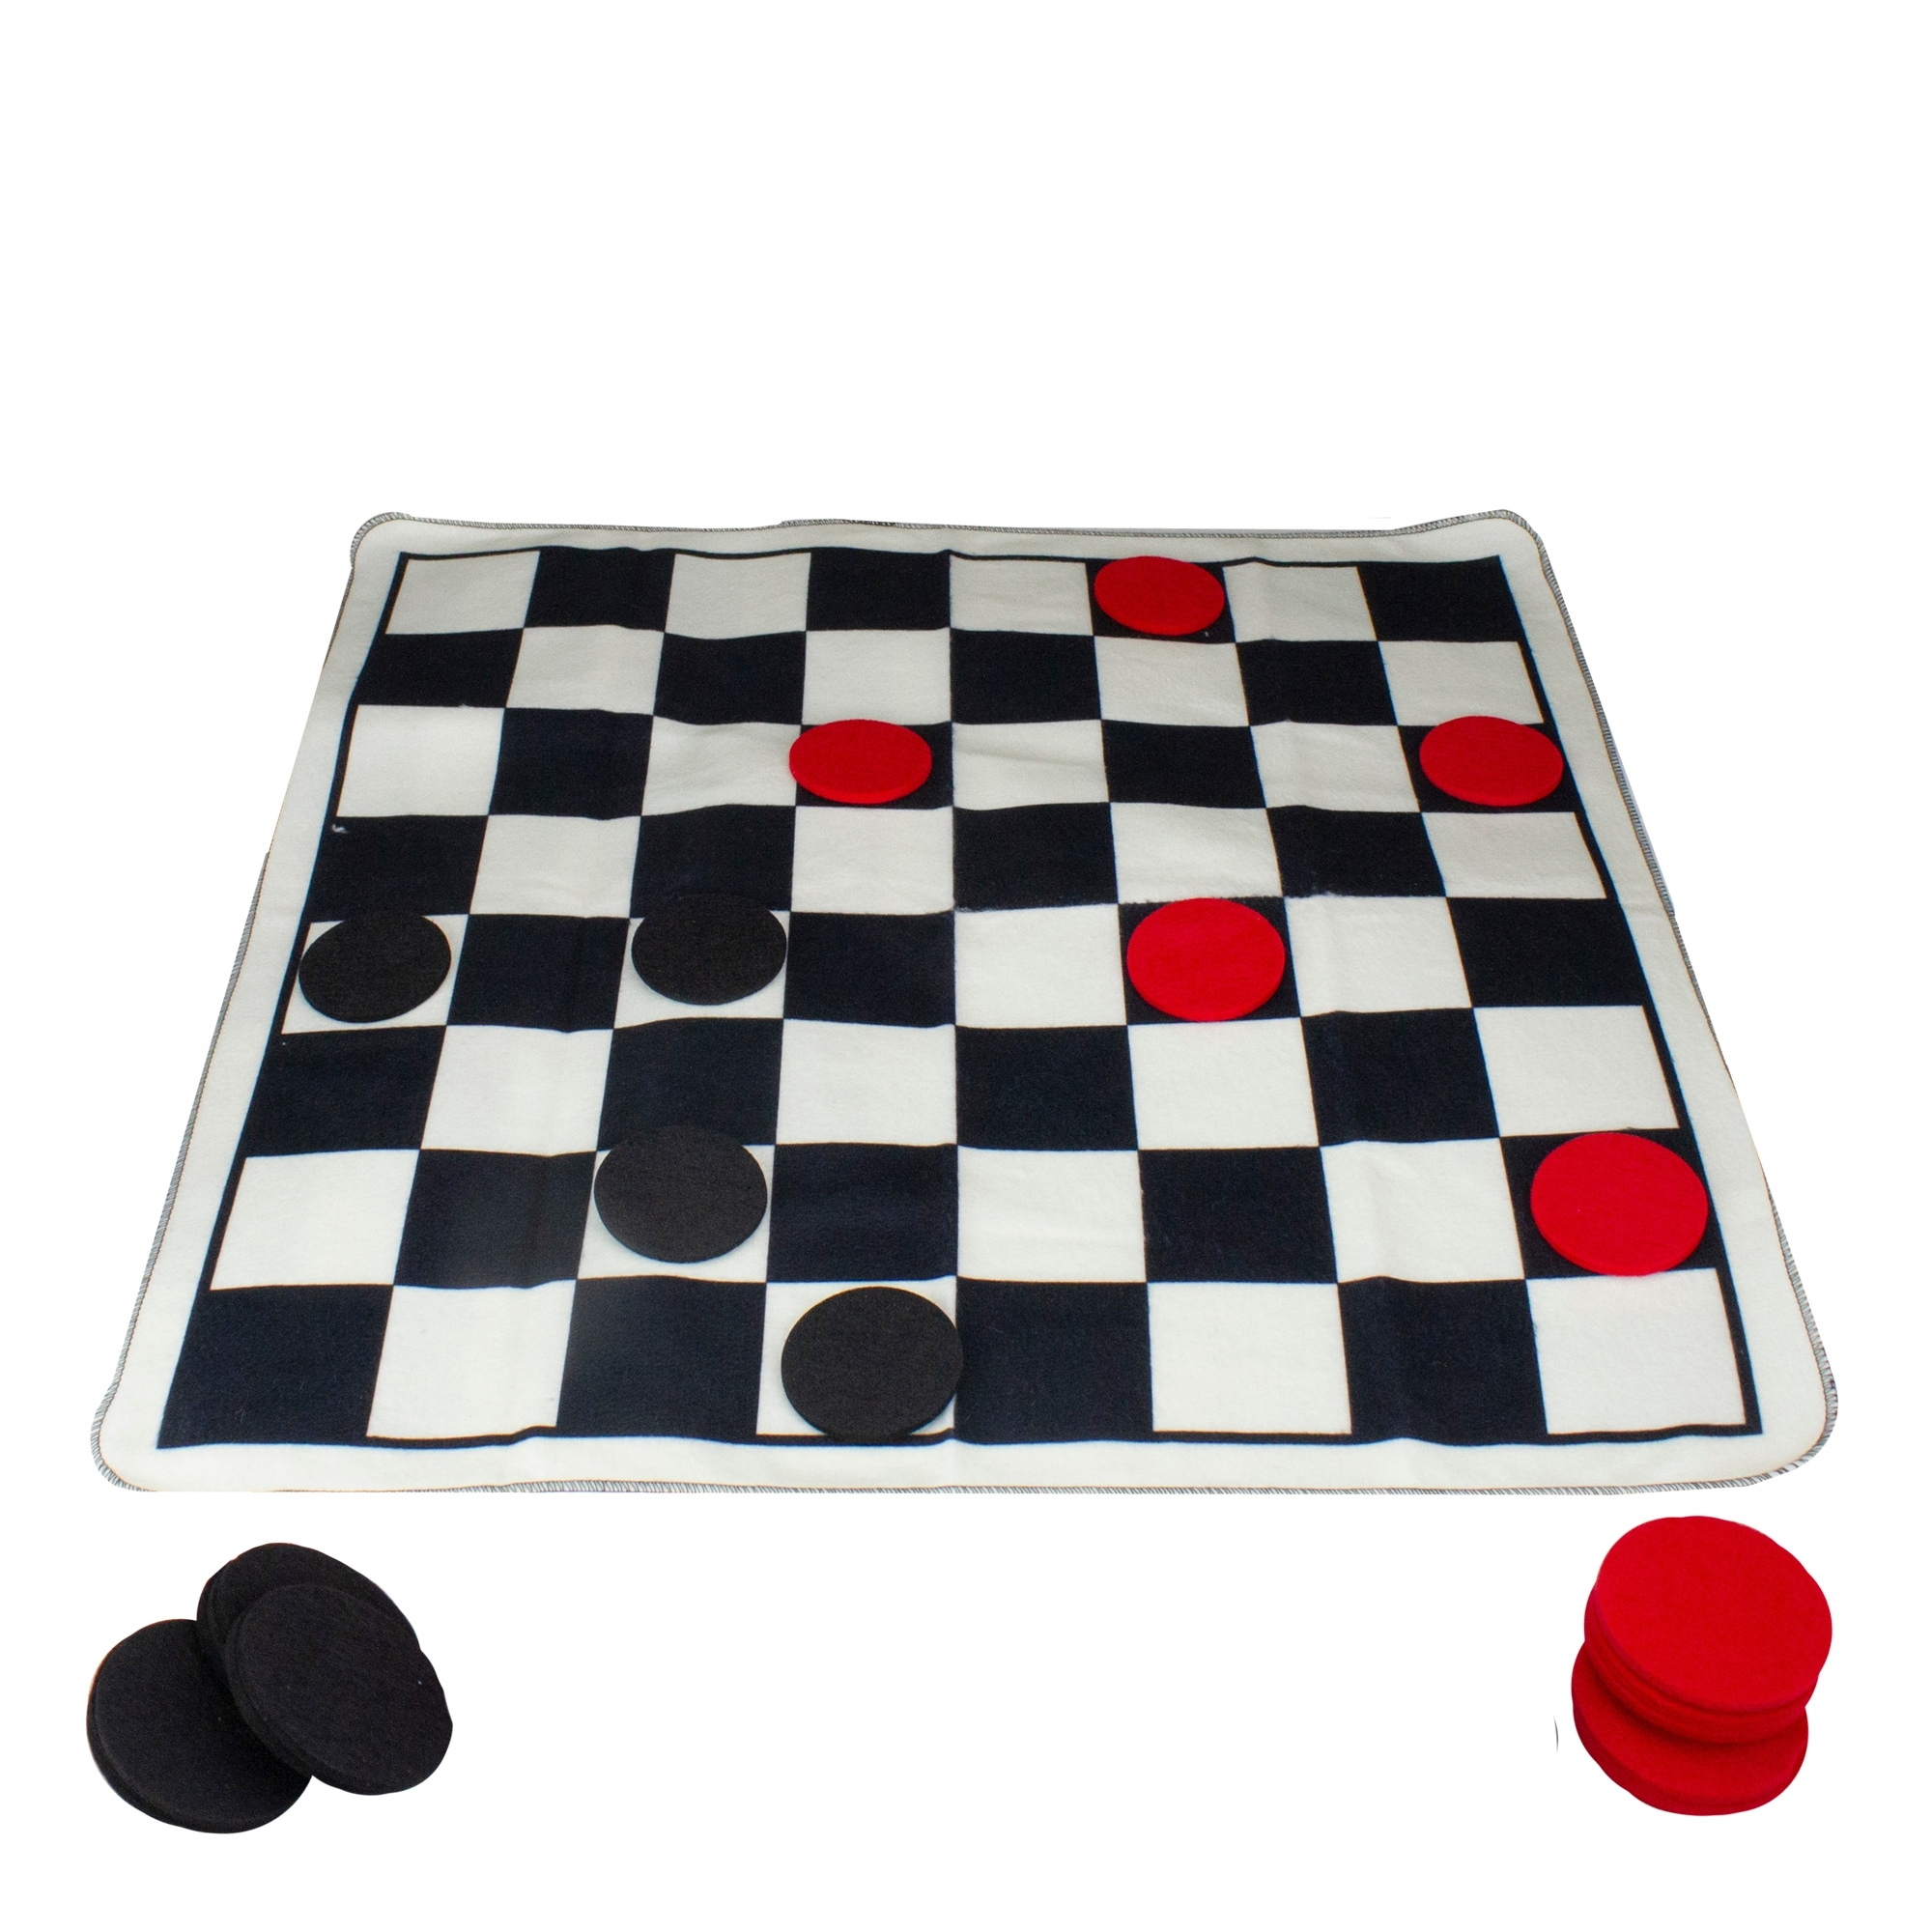 Shop 23 5 Fleece Black And White Checkers Game With Felt Checkers Pieces Overstock 31715212,Caffeine Withdrawal Symptoms Reddit